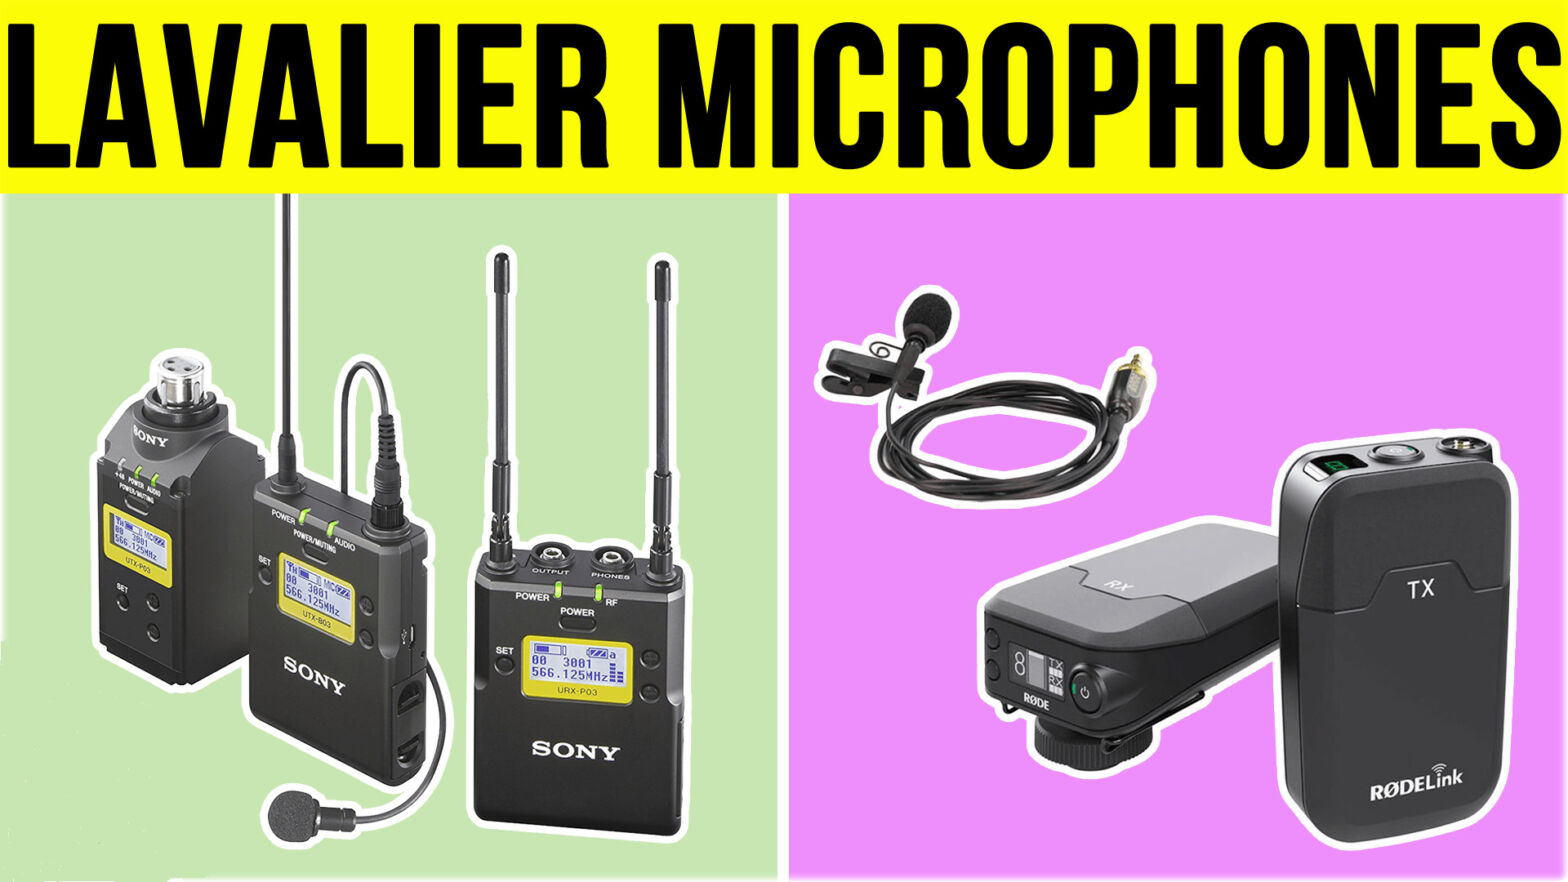 Best Lavalier Microphones - Featured Image